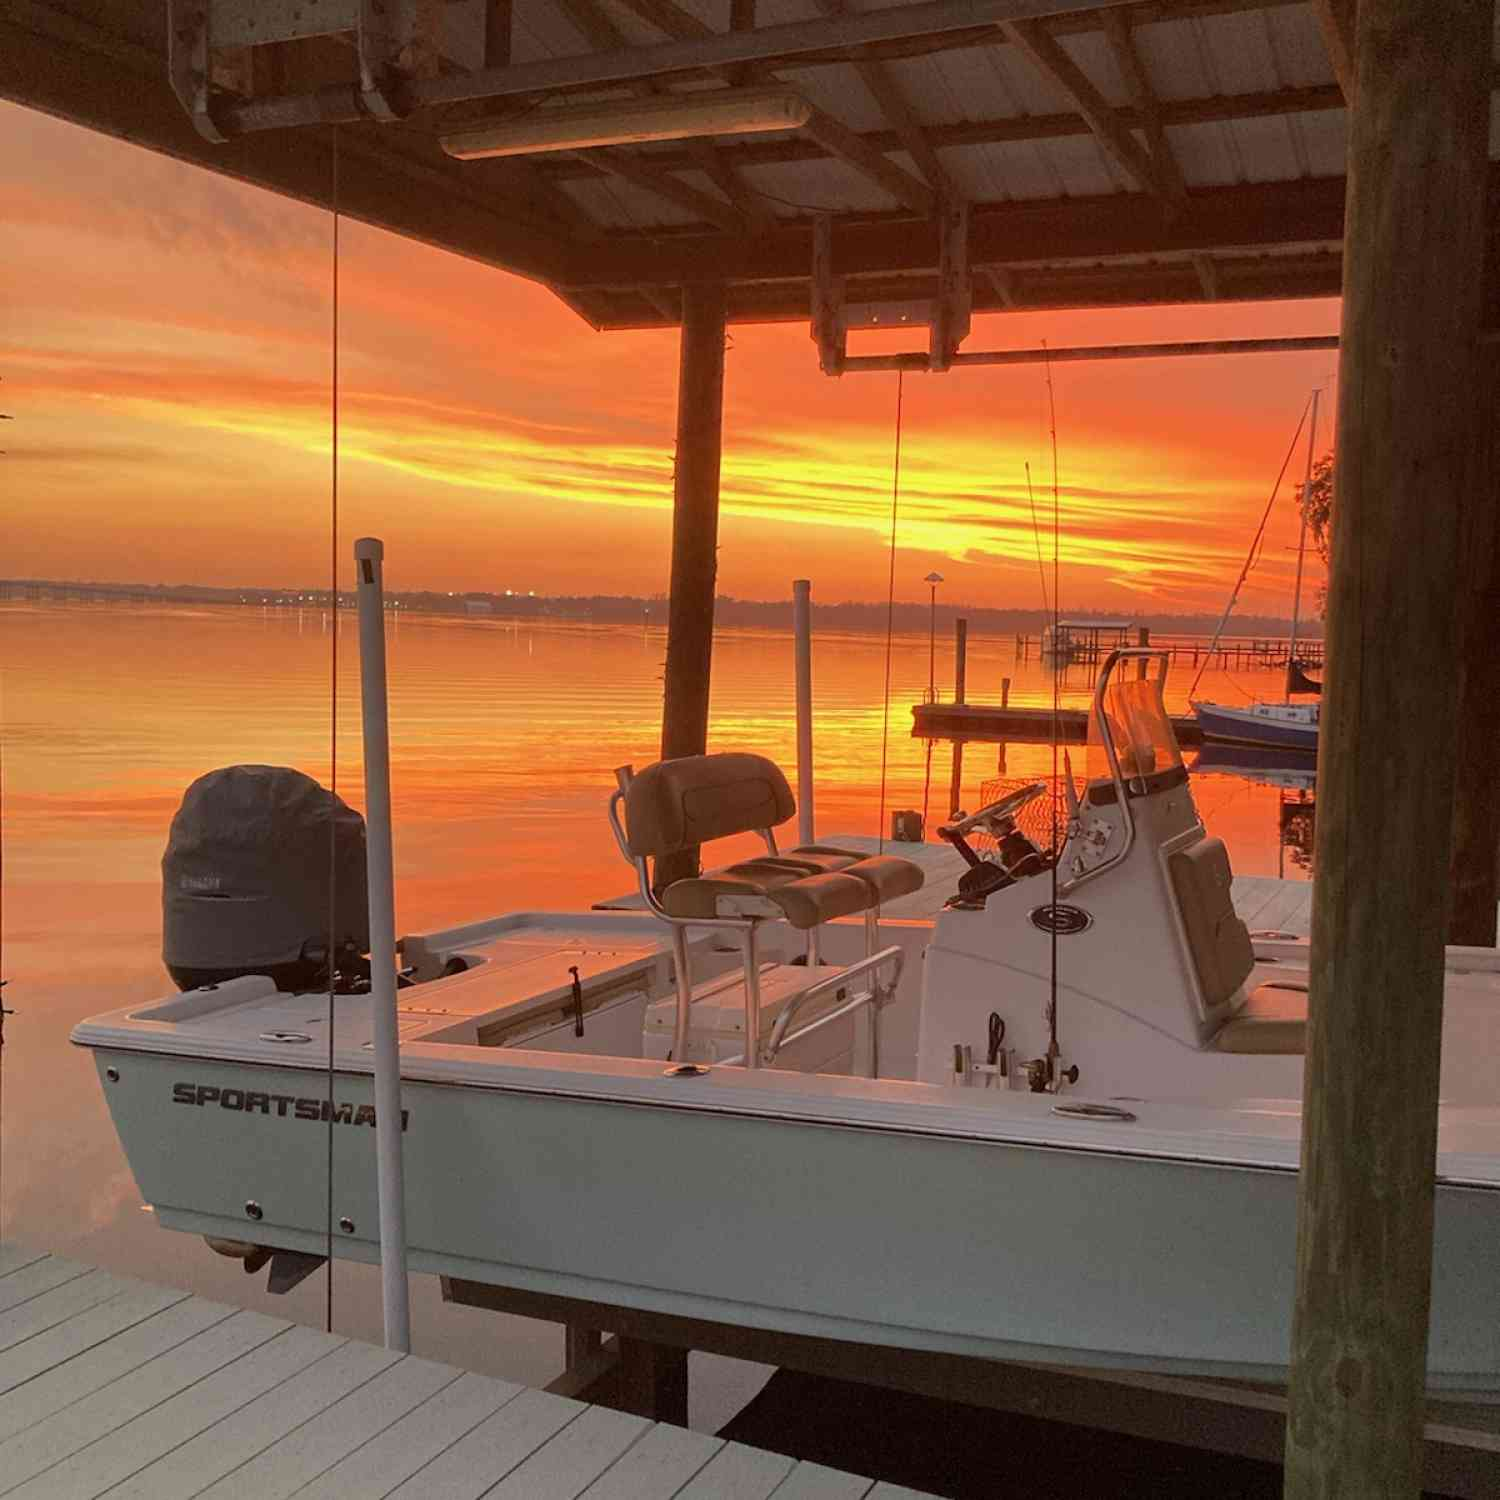 Title: Sportsman sunsets - On board their Sportsman Open 232 Center Console - Location: Near Jacksonville Florida. Participating in the Photo Contest #SportsmanFebruary2021